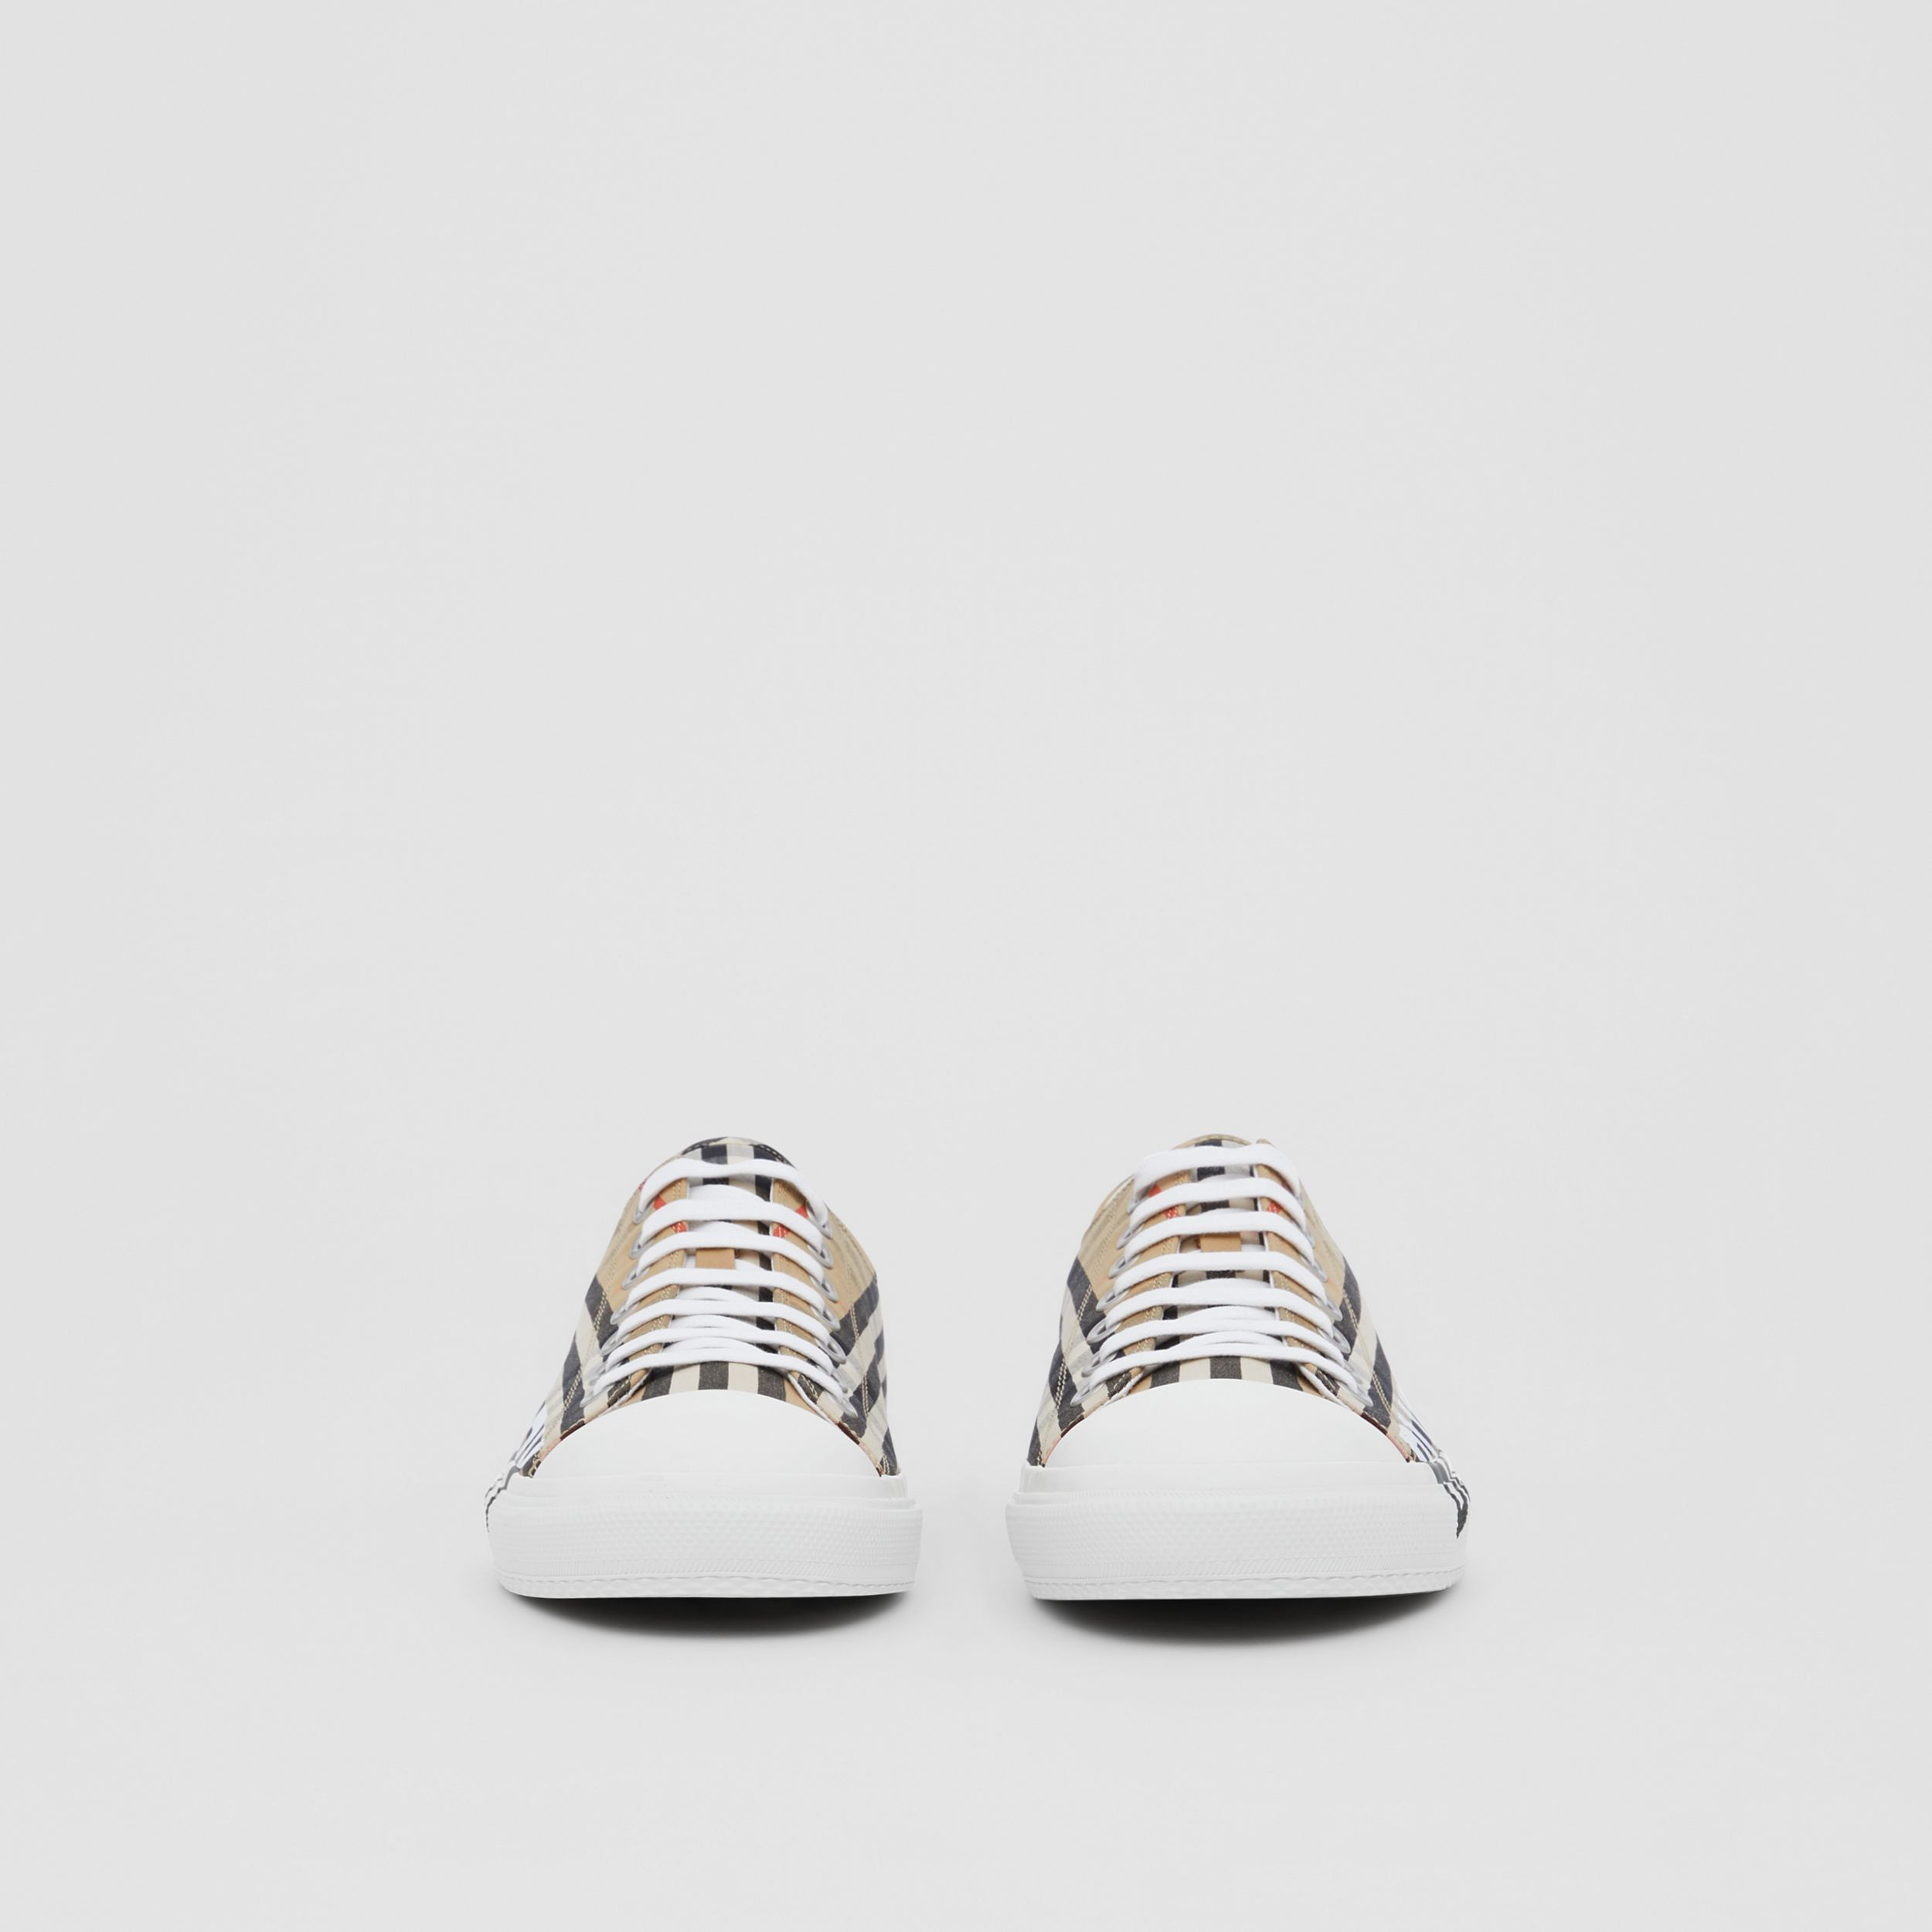 Logo Print Vintage Check Cotton Sneakers in Archive Beige - Men | Burberry - 4